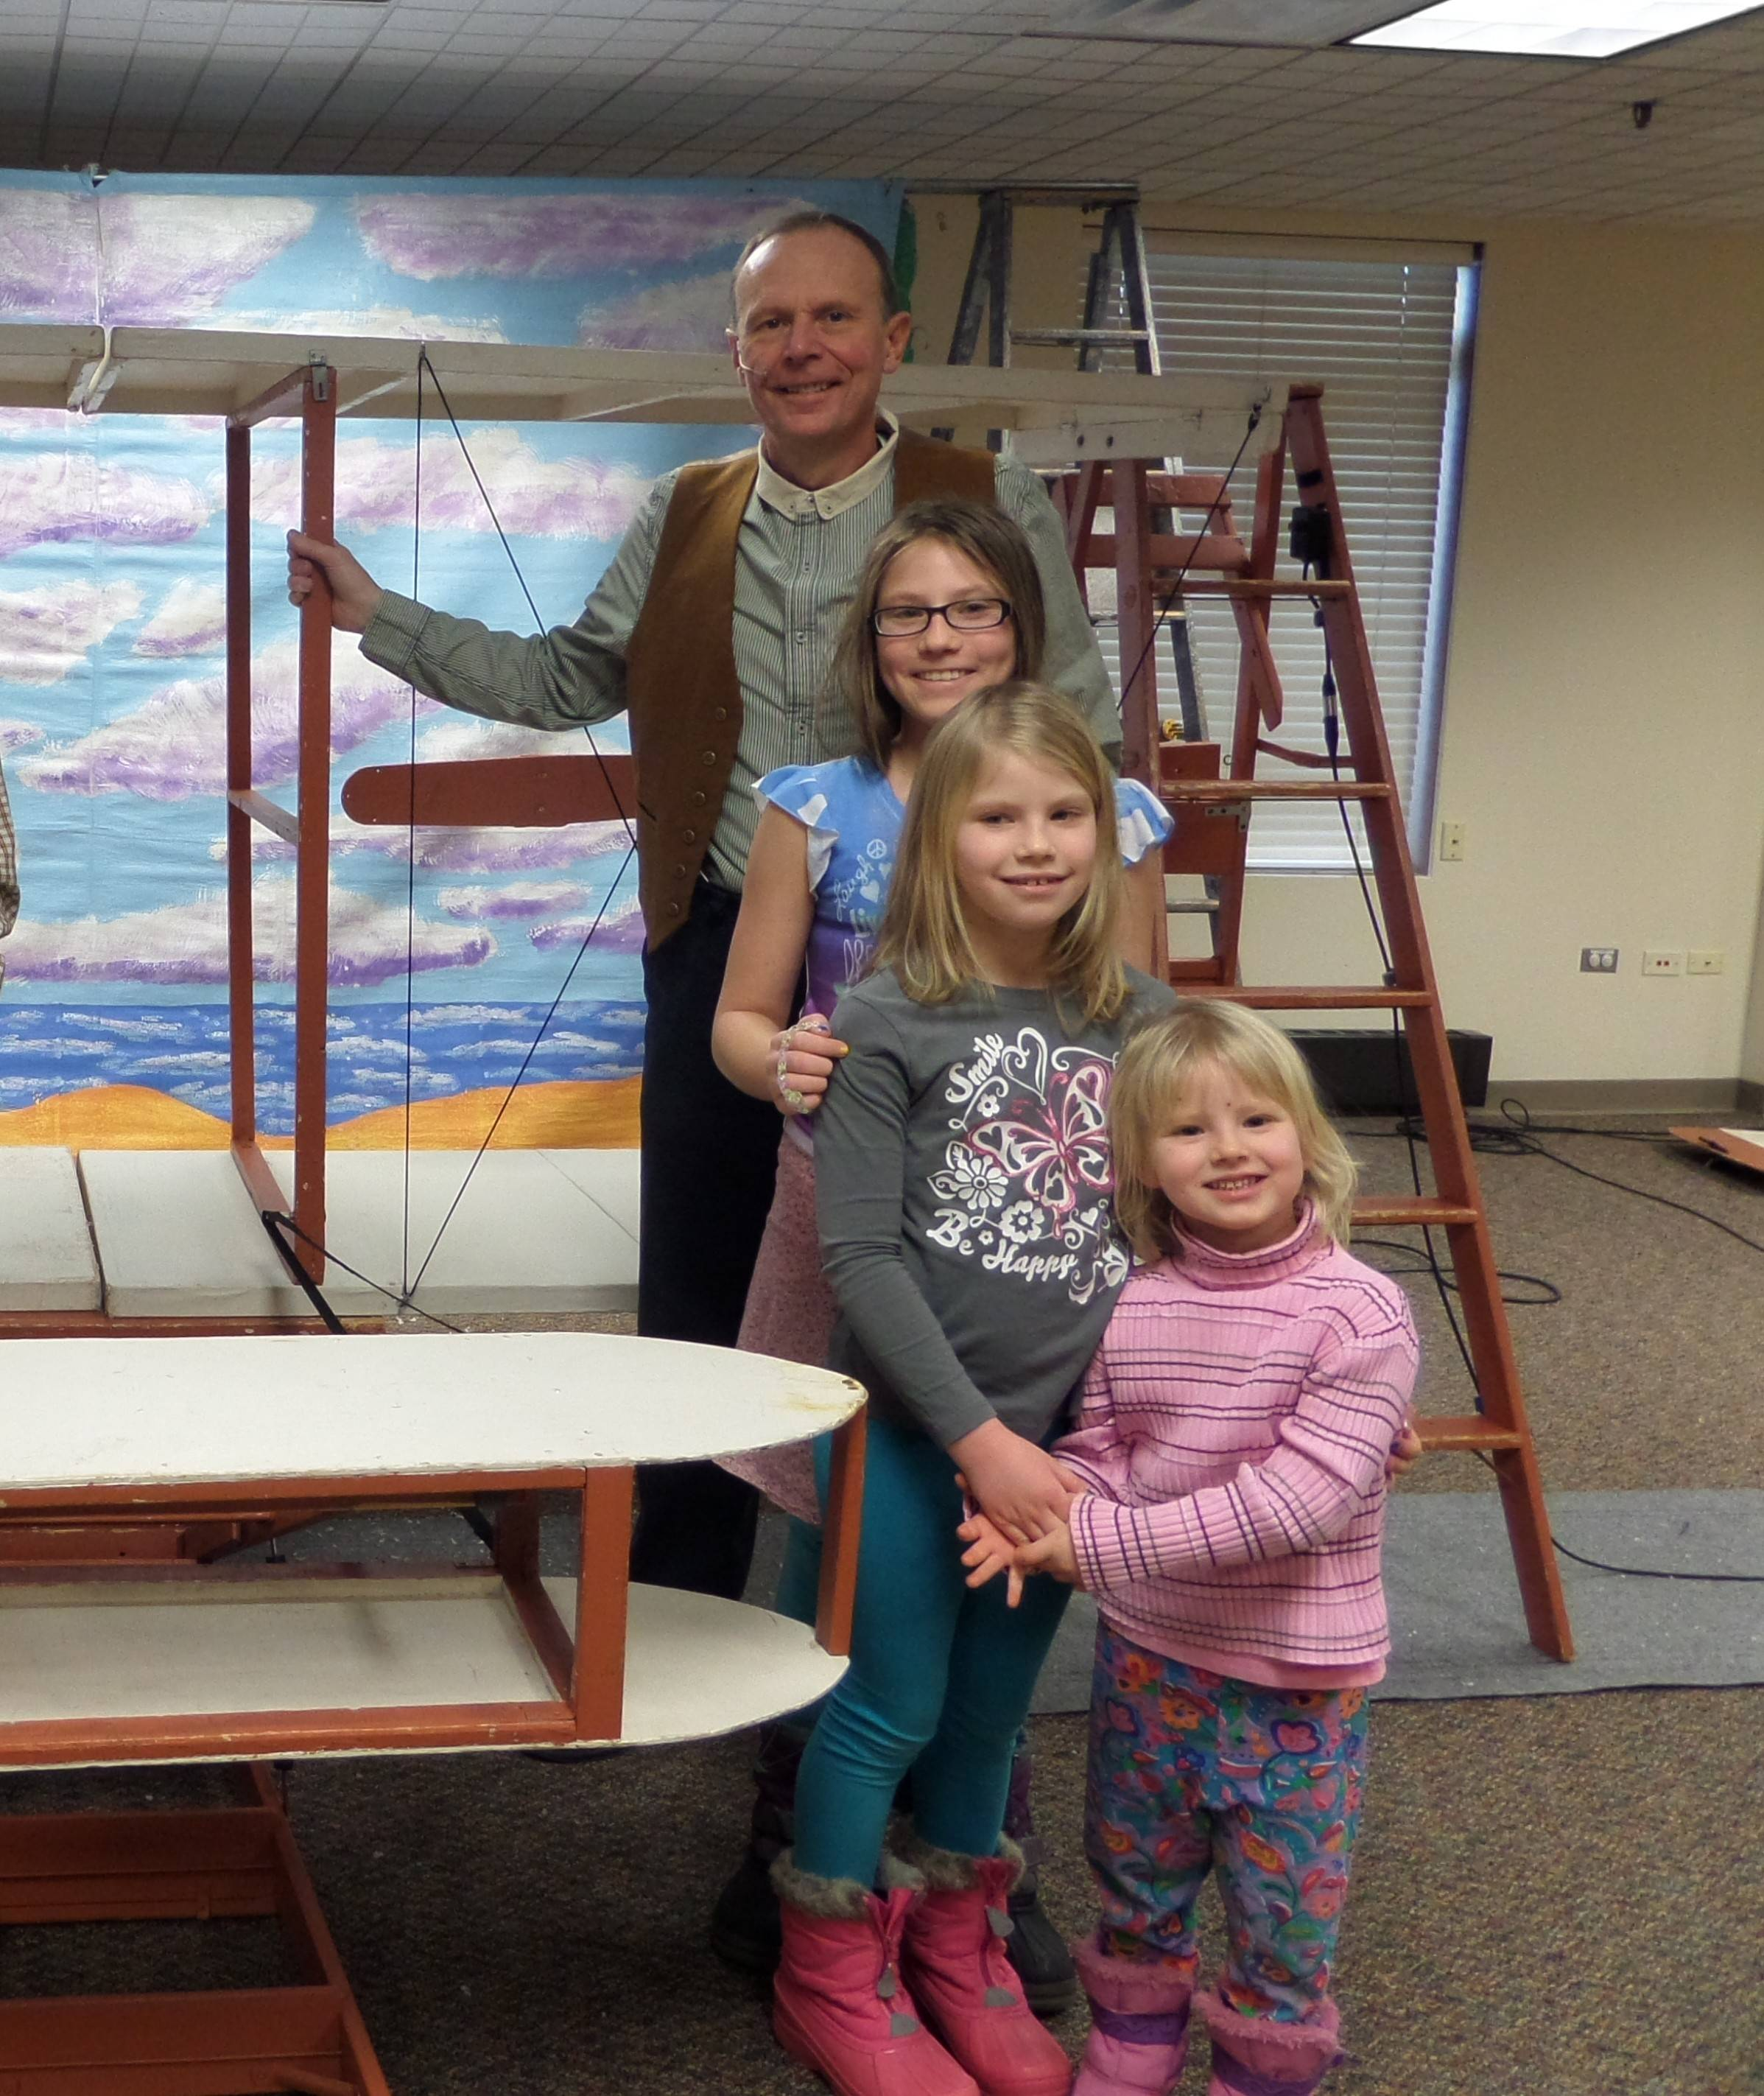 The King sisters share a moment with Wilbur Wright and the historical flyer at the Barltett Public Library. Pictured, from left, are Face to Face Production's Mark Grimsich and Bartlett residents Aria, Rylee and Clarice King.